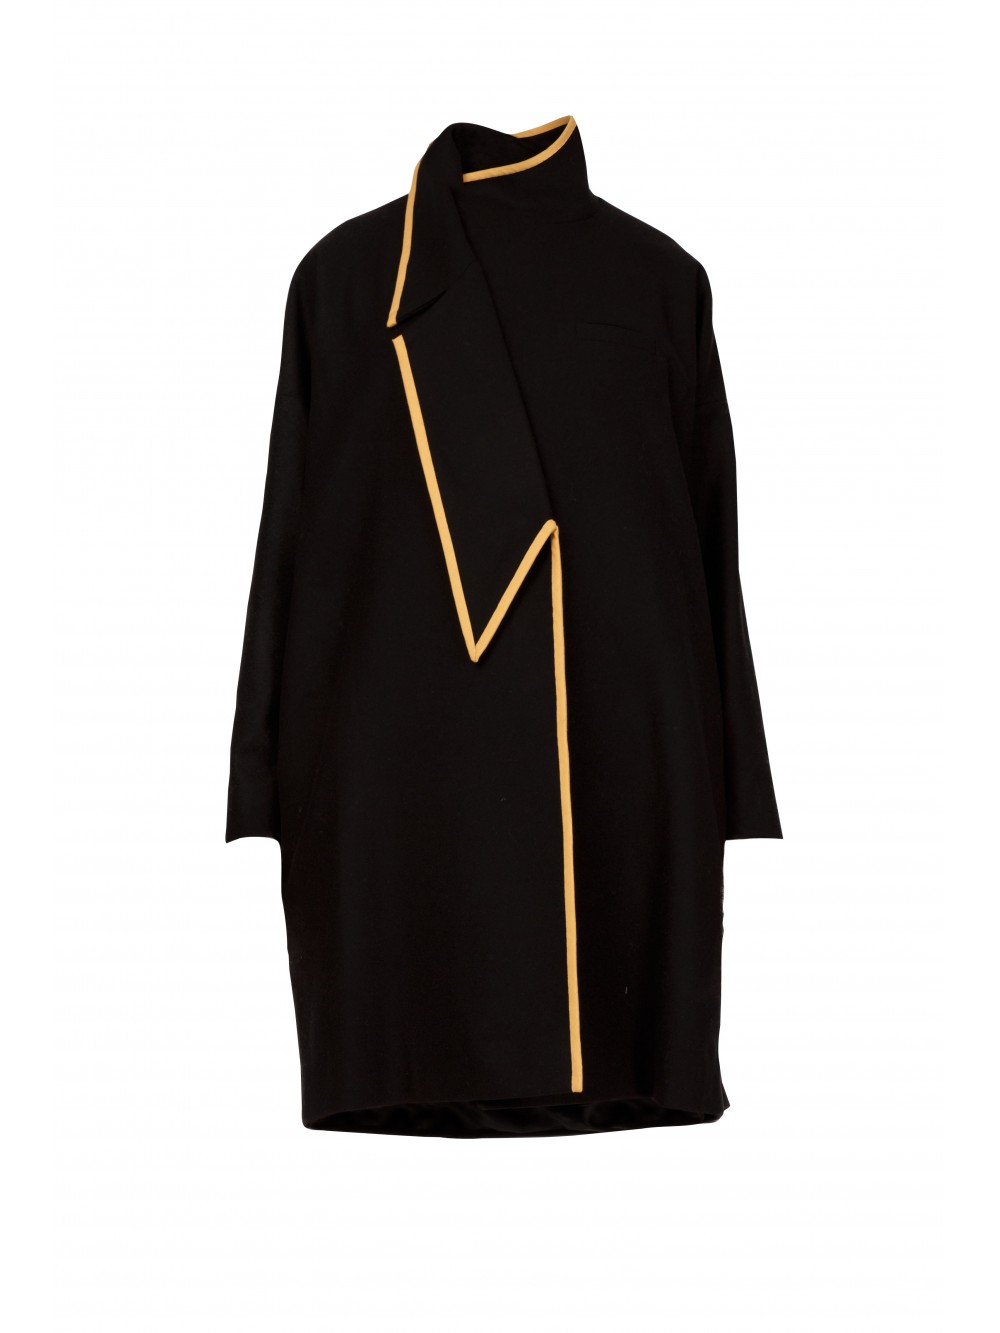 Asymmetric A-Line oversized coat with Gold Bias | Jeanne